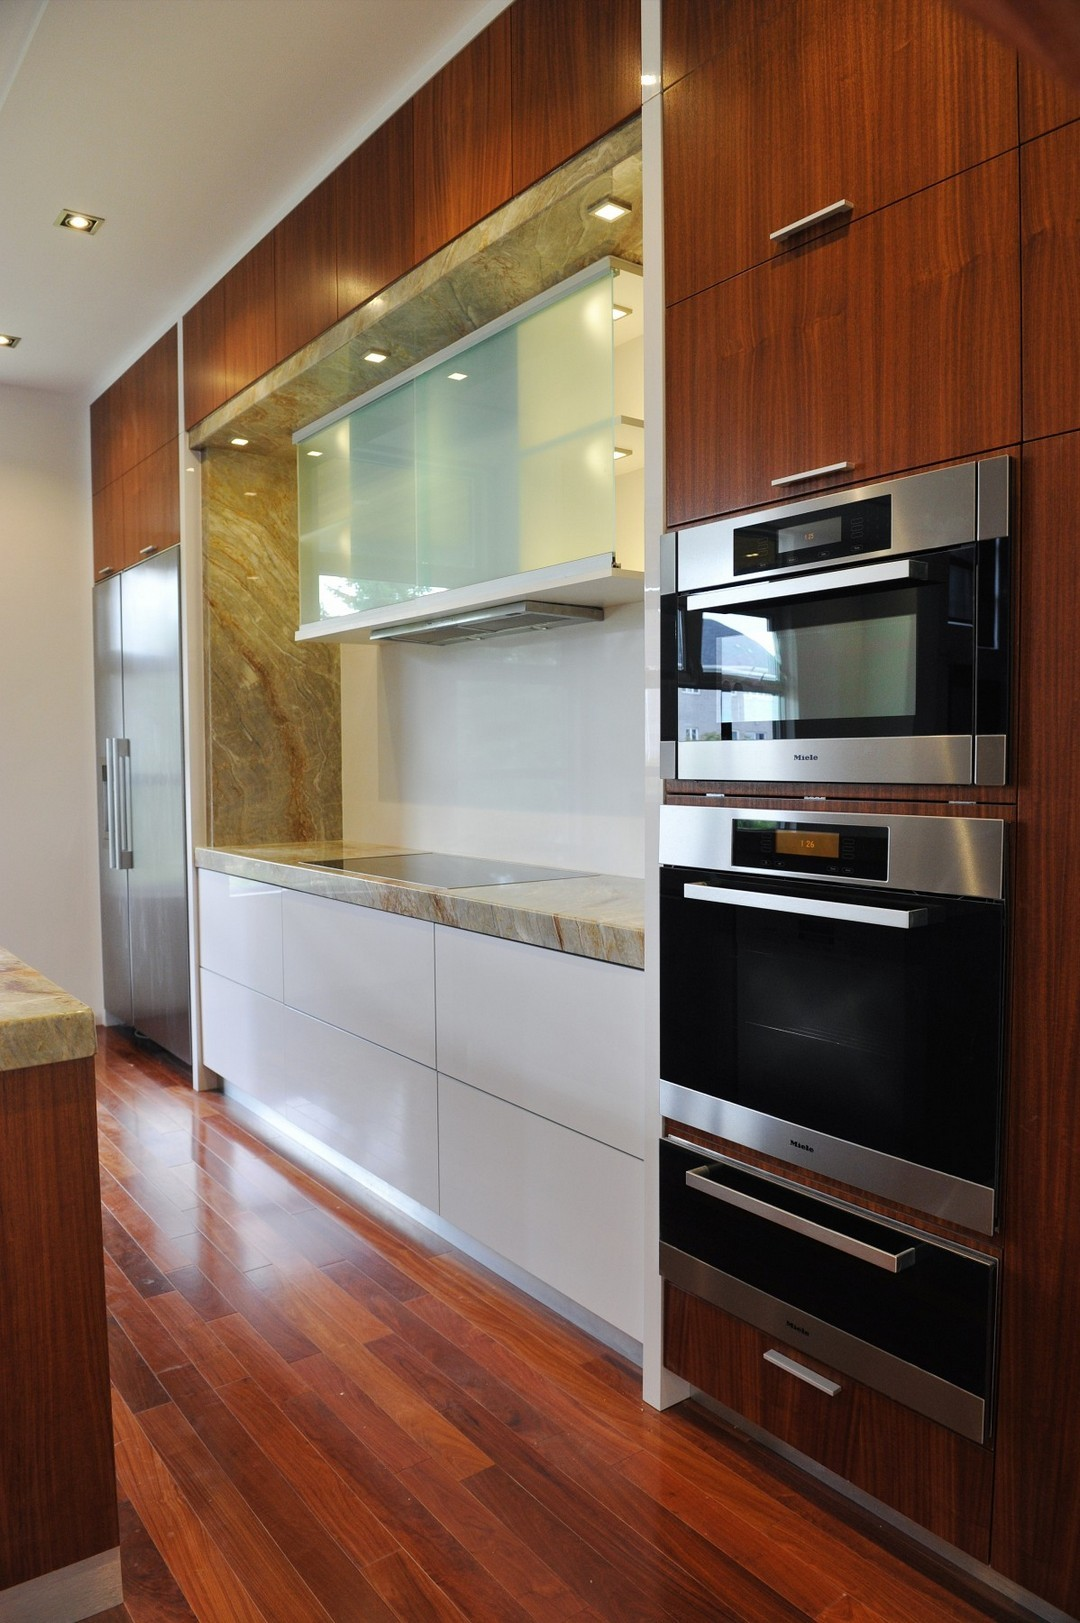 kitchen_00004